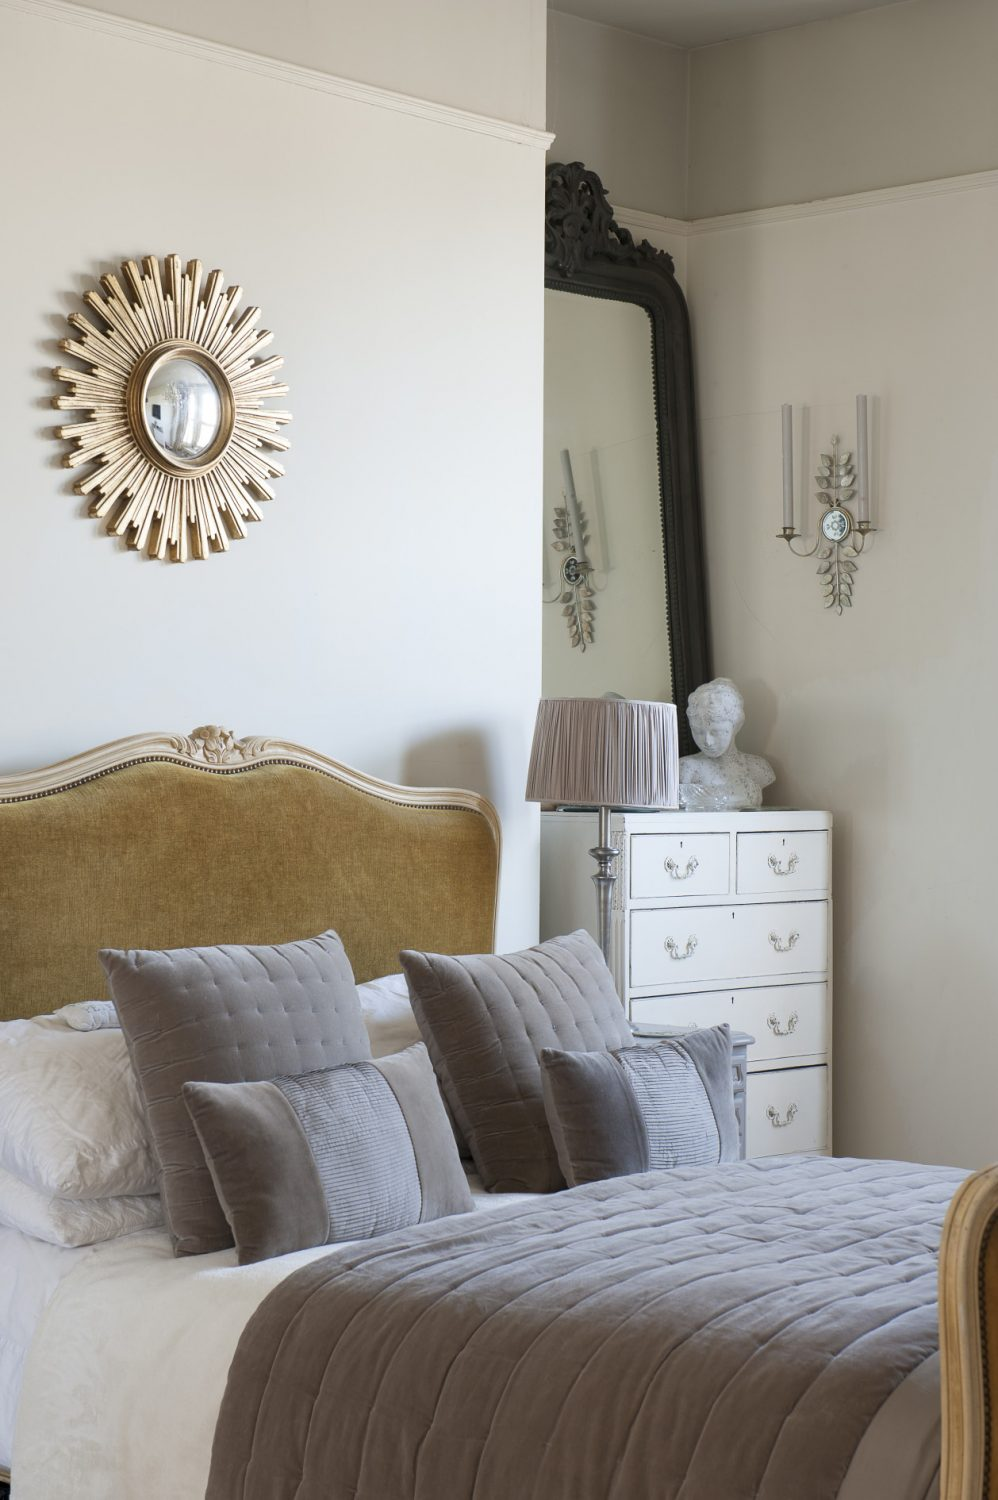 Centre-piece of the master bedroom is a large and elegant French corbeille bed over which hangs a 1950s sunburst mirror